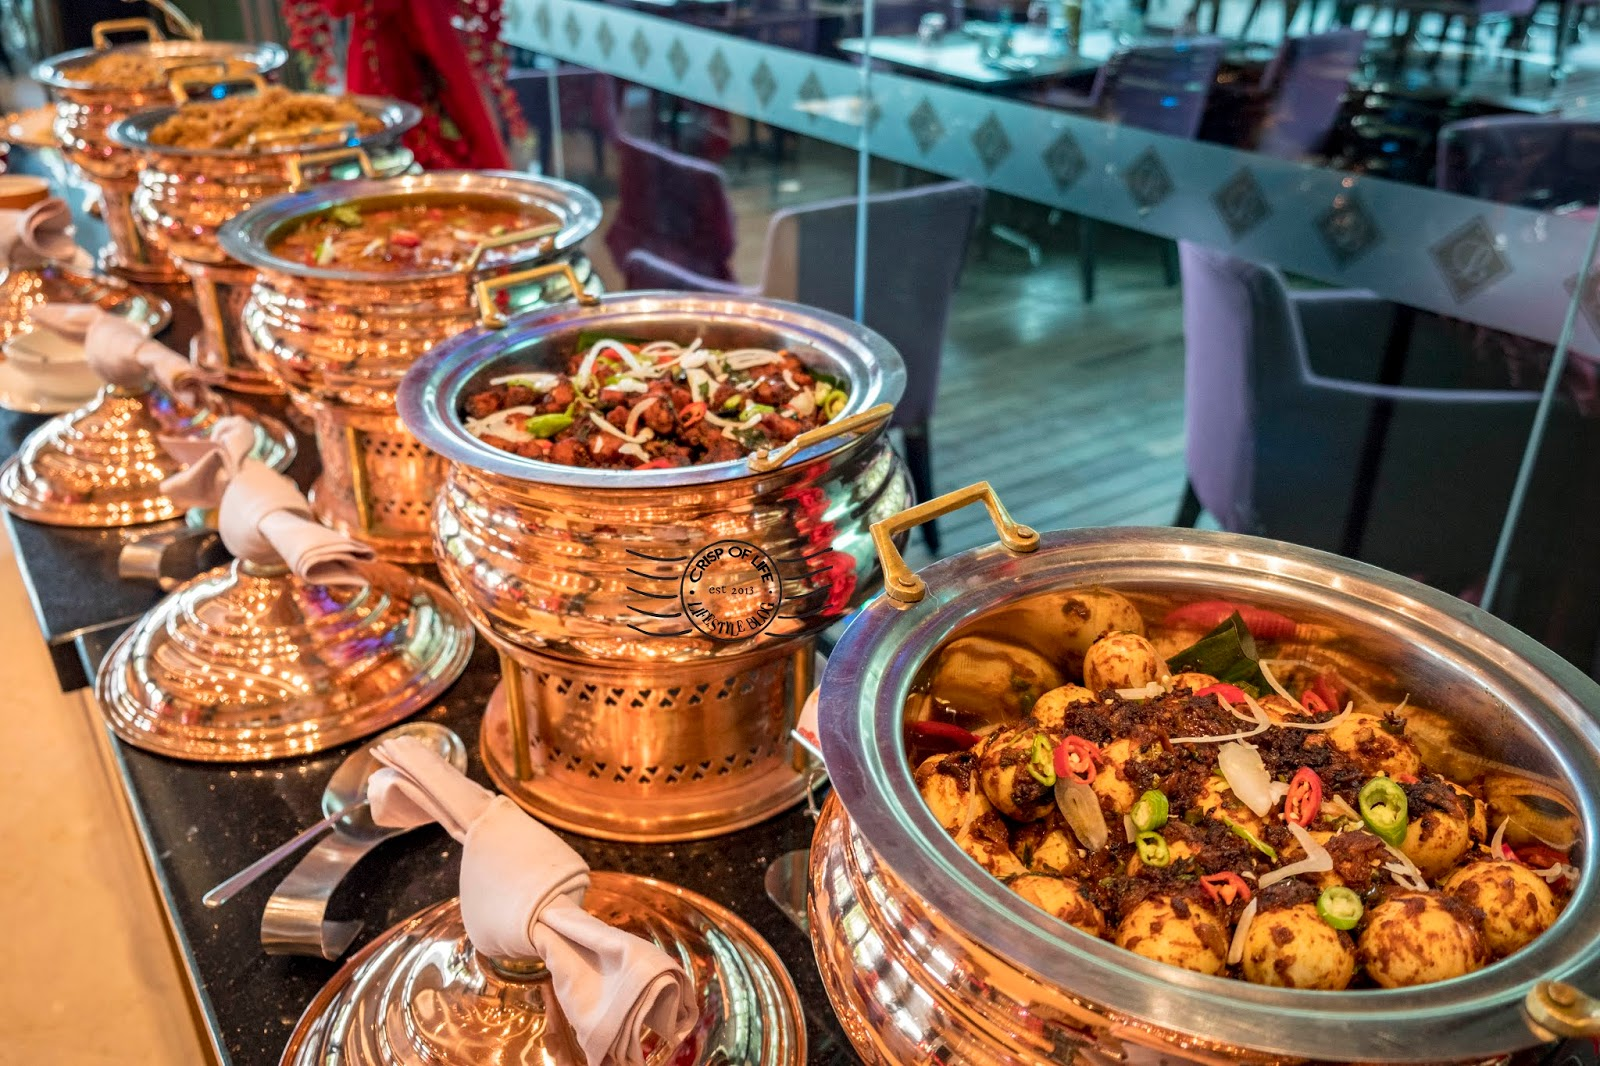 Chinese New Year Festive Buffet with Assortment of Good Food @ The Light Hotel Penang